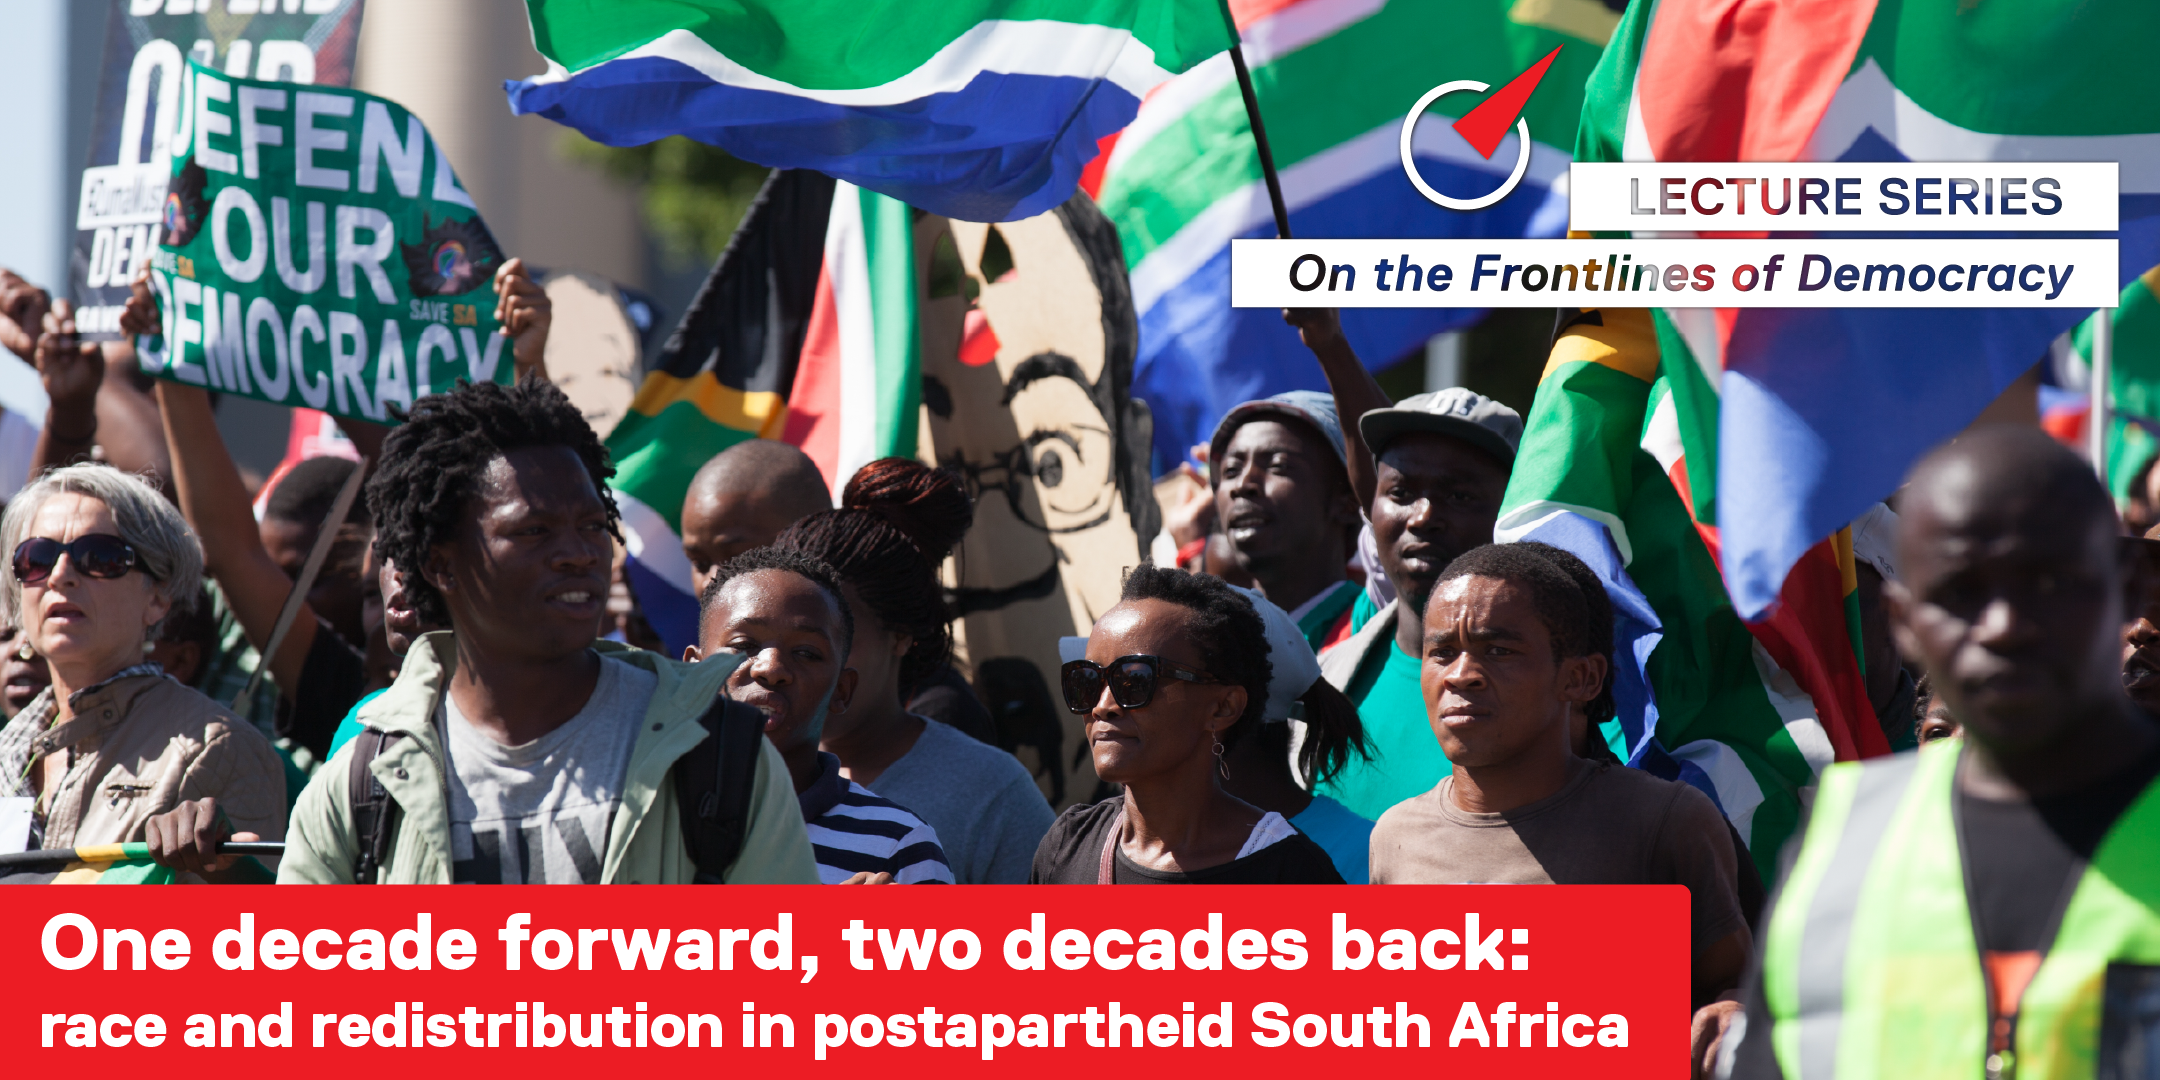 One decade forward, two decades back: race & redistribution in South Africa